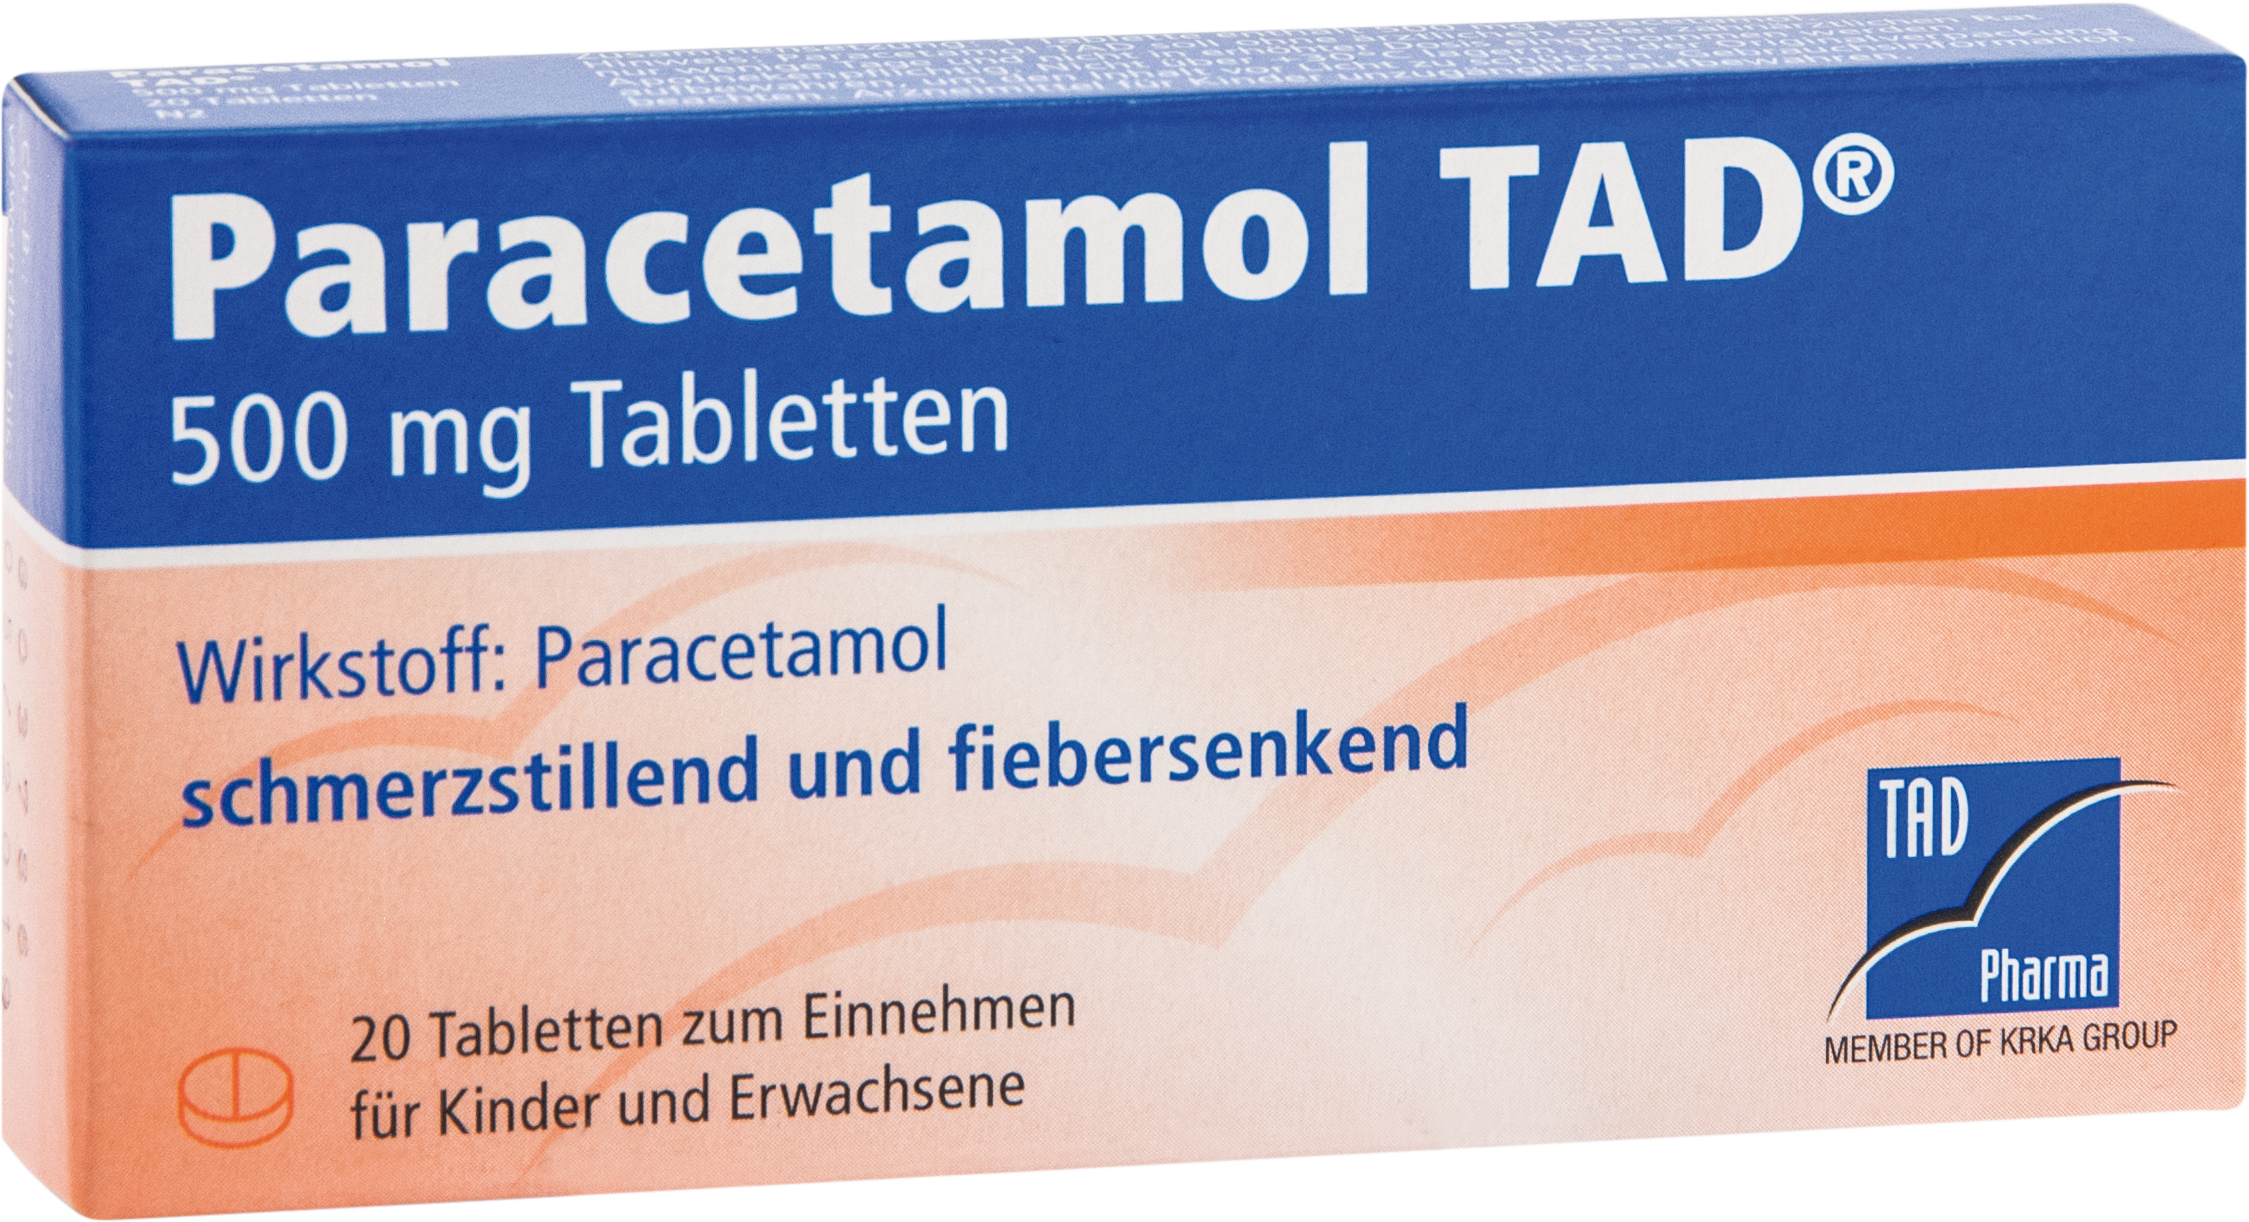 Paracetamol TAD 500mg Tabletten